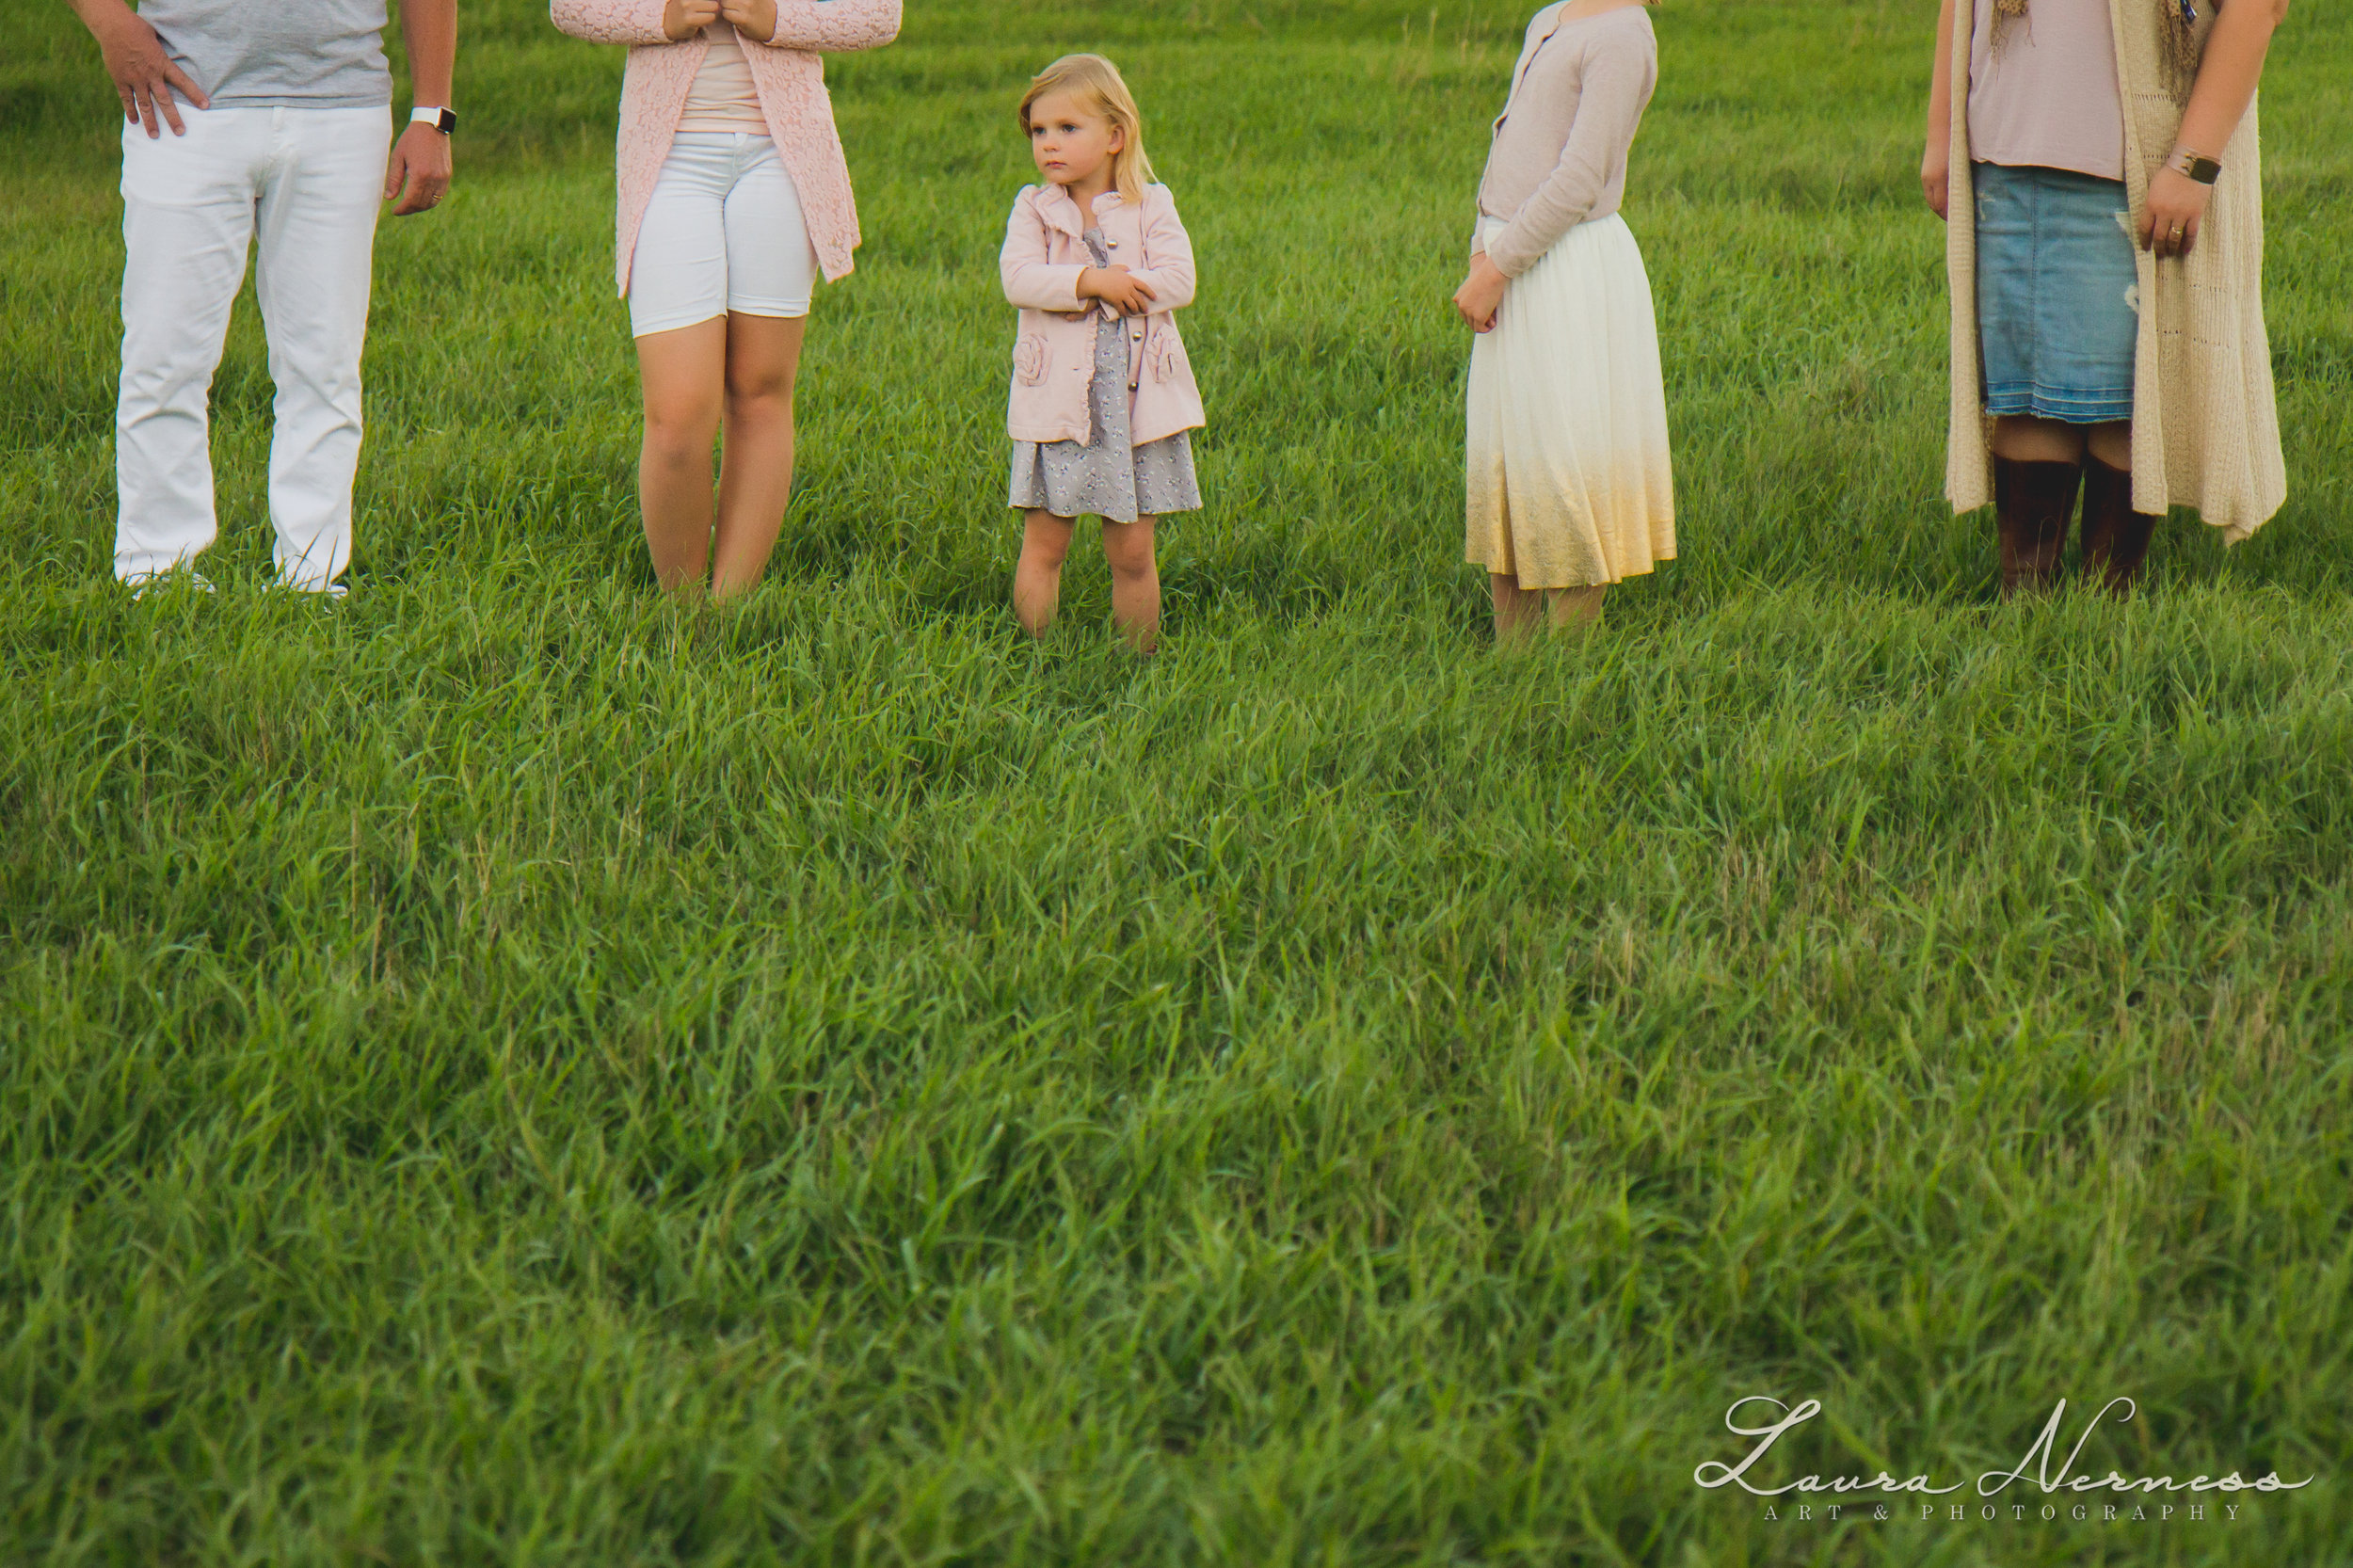 Wildeboer Family-75.jpg